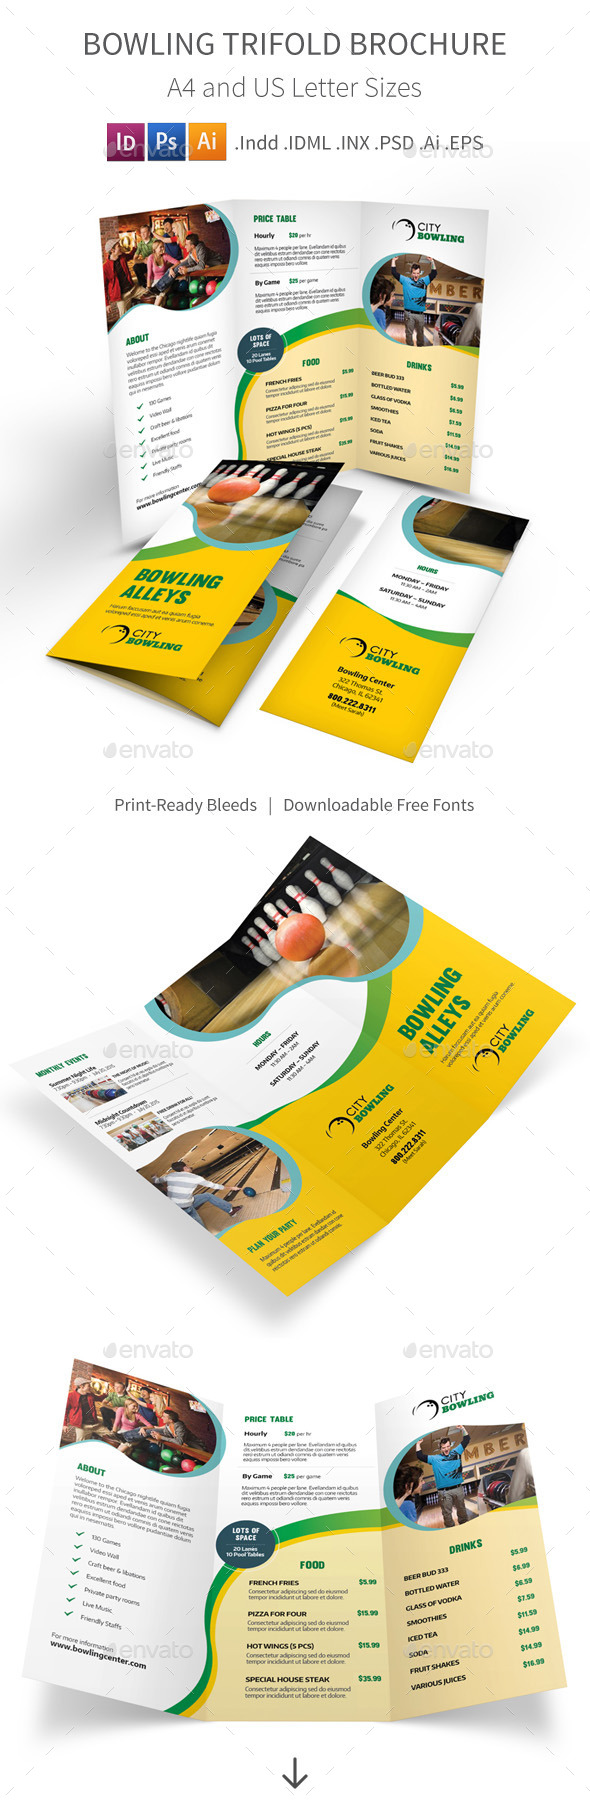 Bowling Trifold Brochure - Informational Brochures